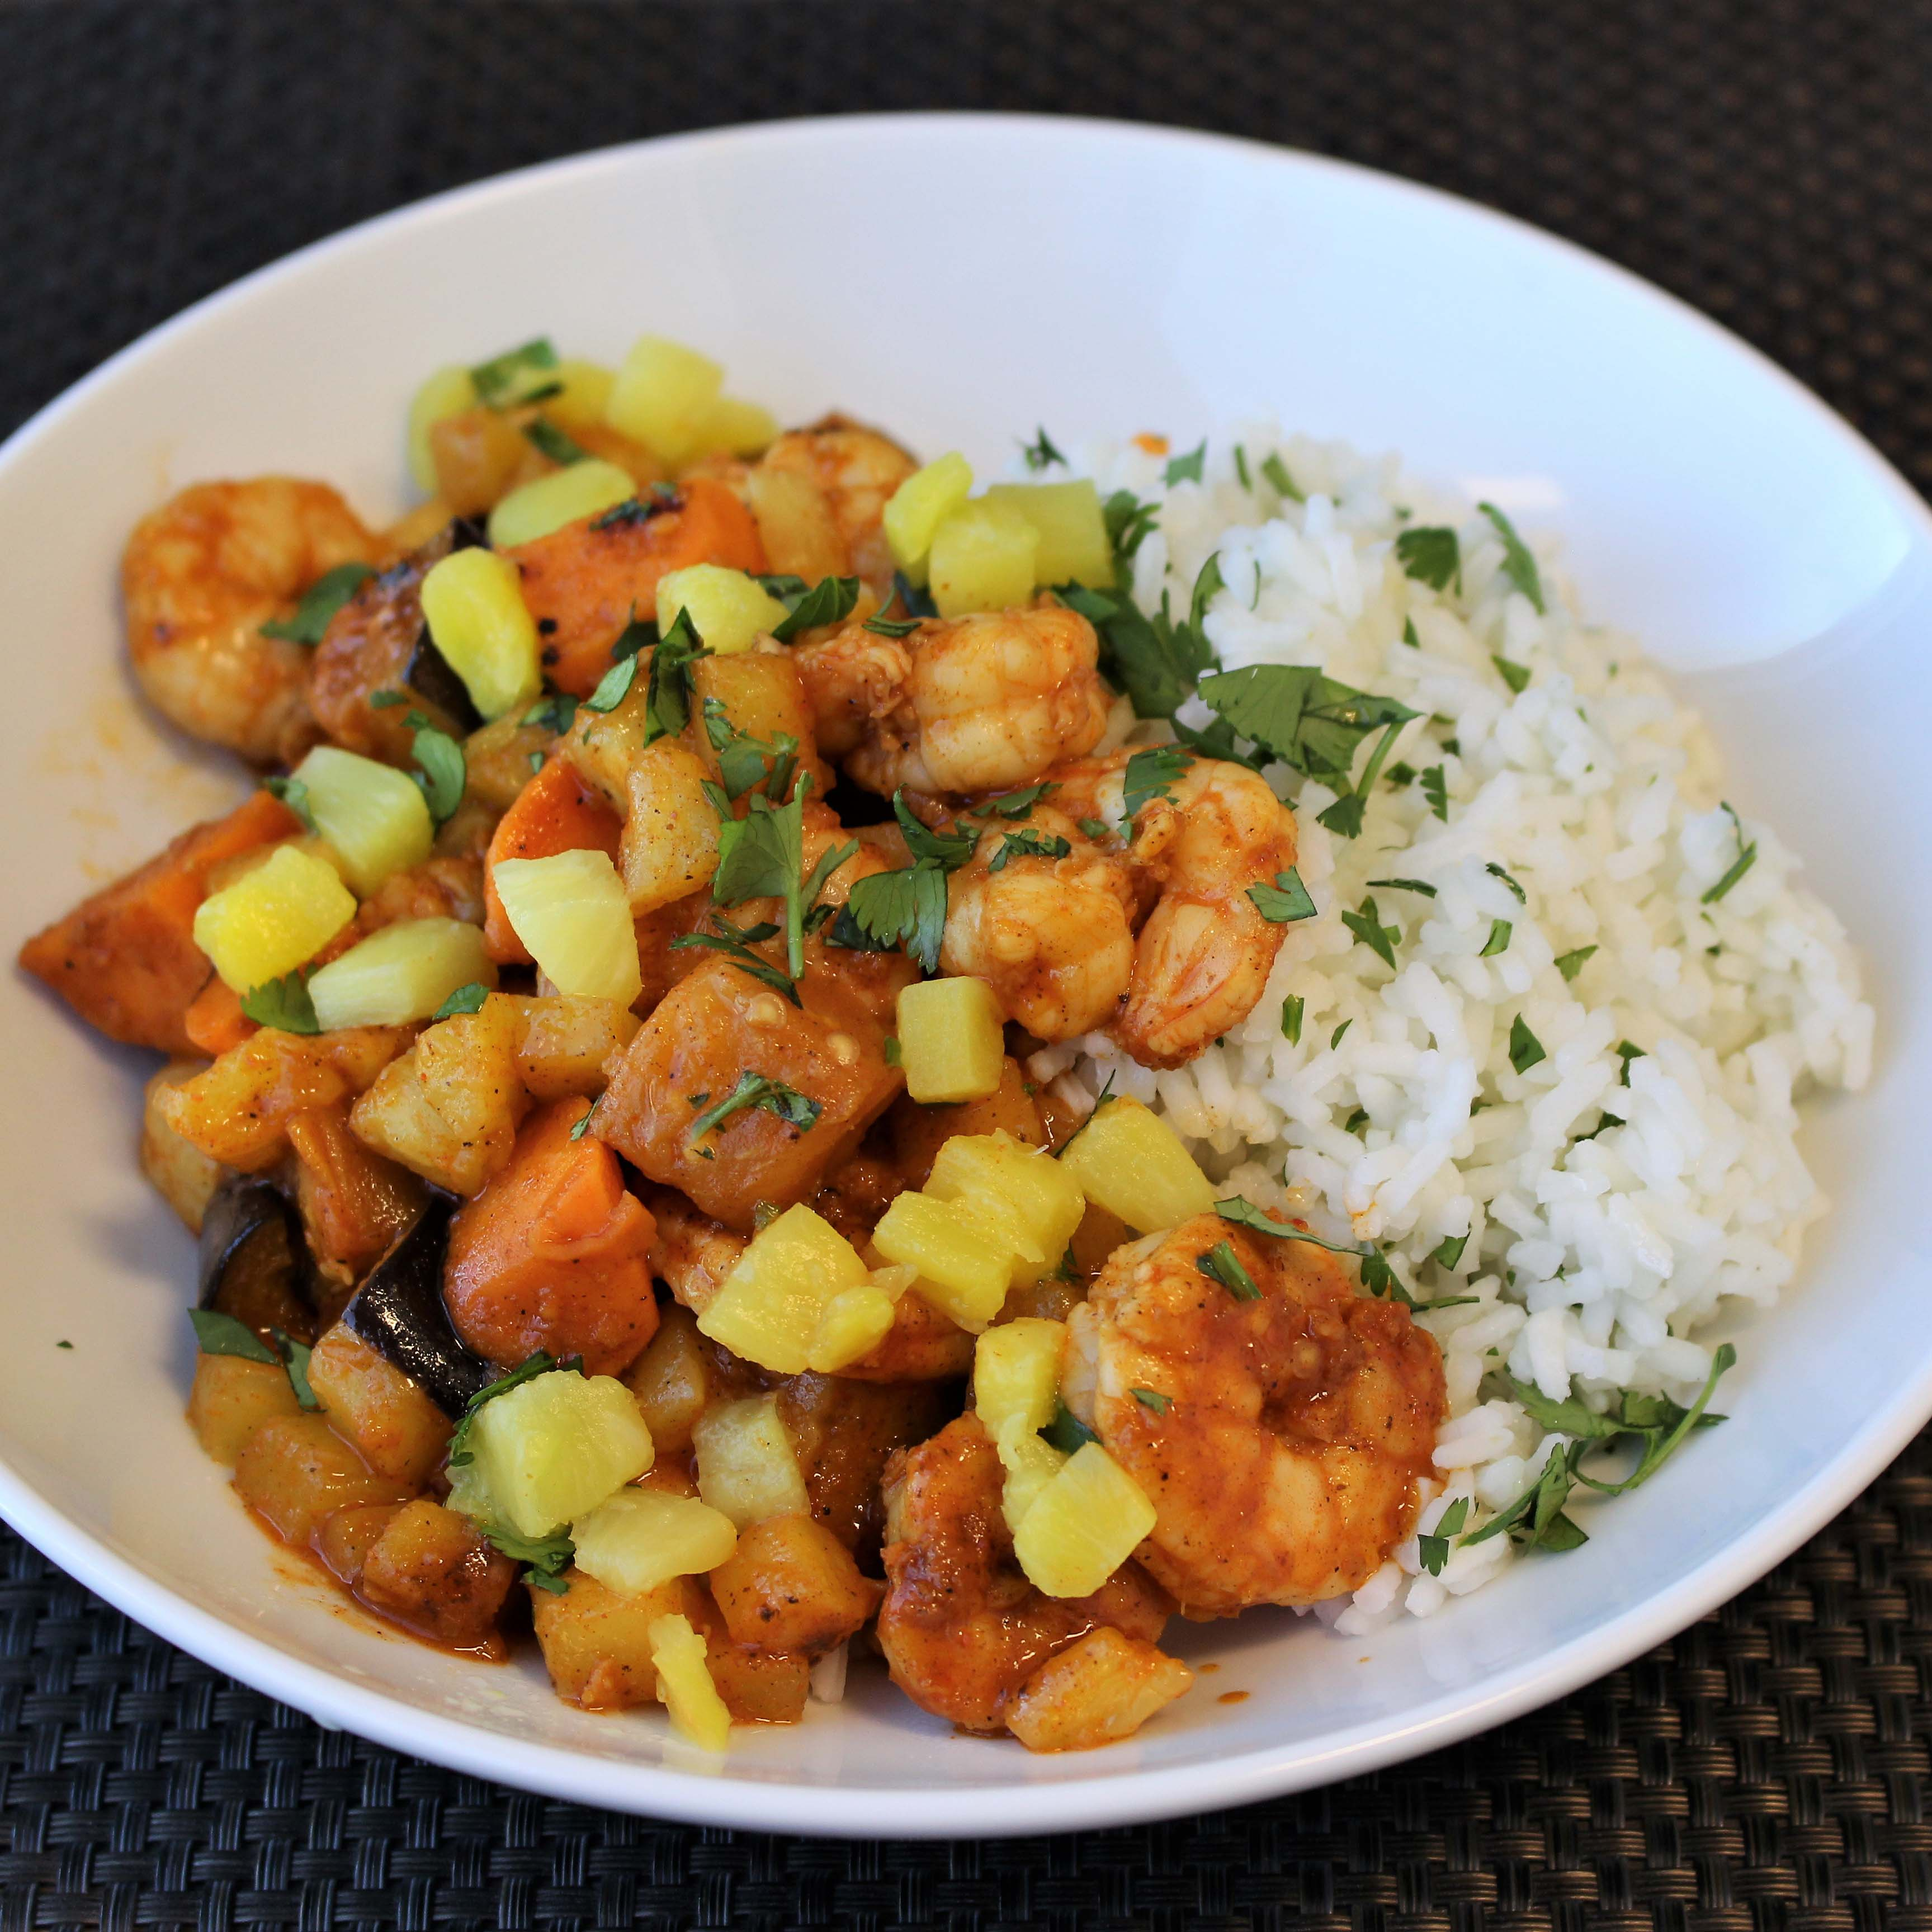 Piri Piri Shrimp and Pineapple Stir Fry